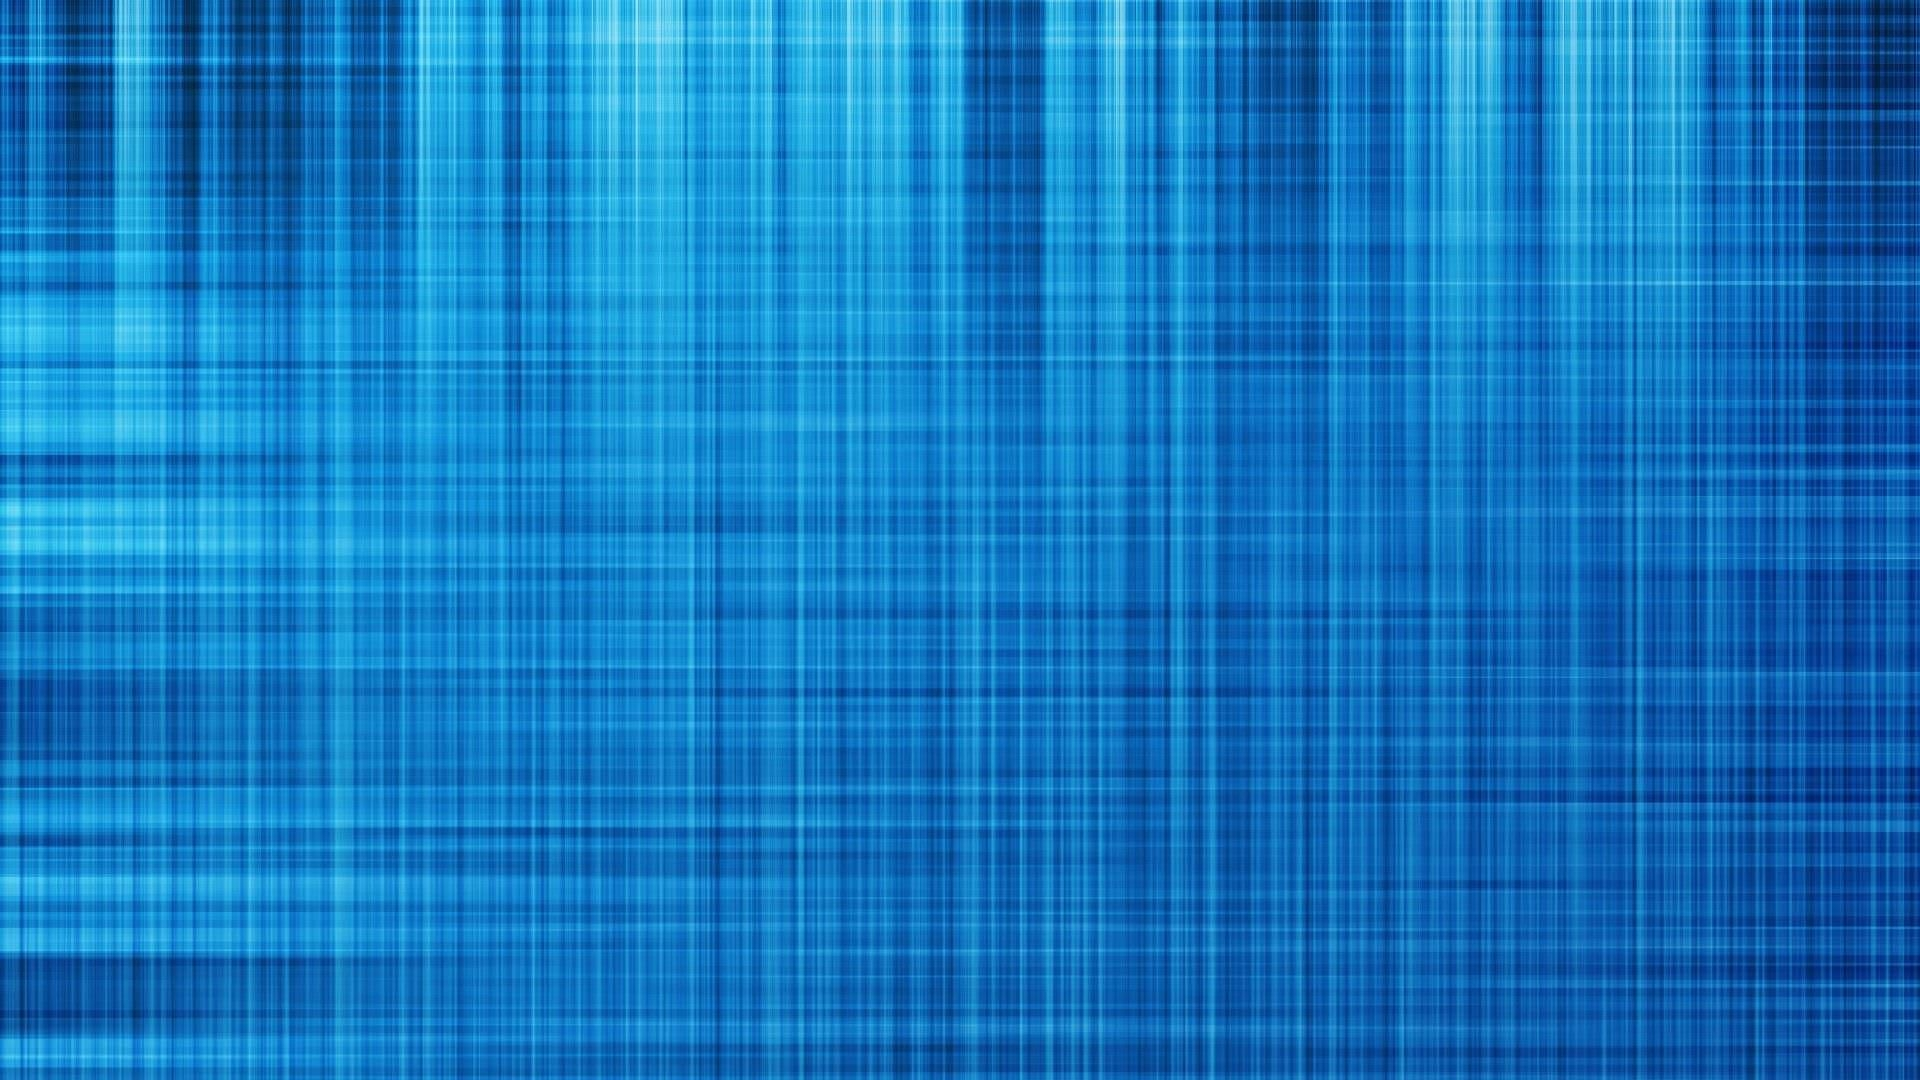 Simple Blue Plain Texture Wallpaper